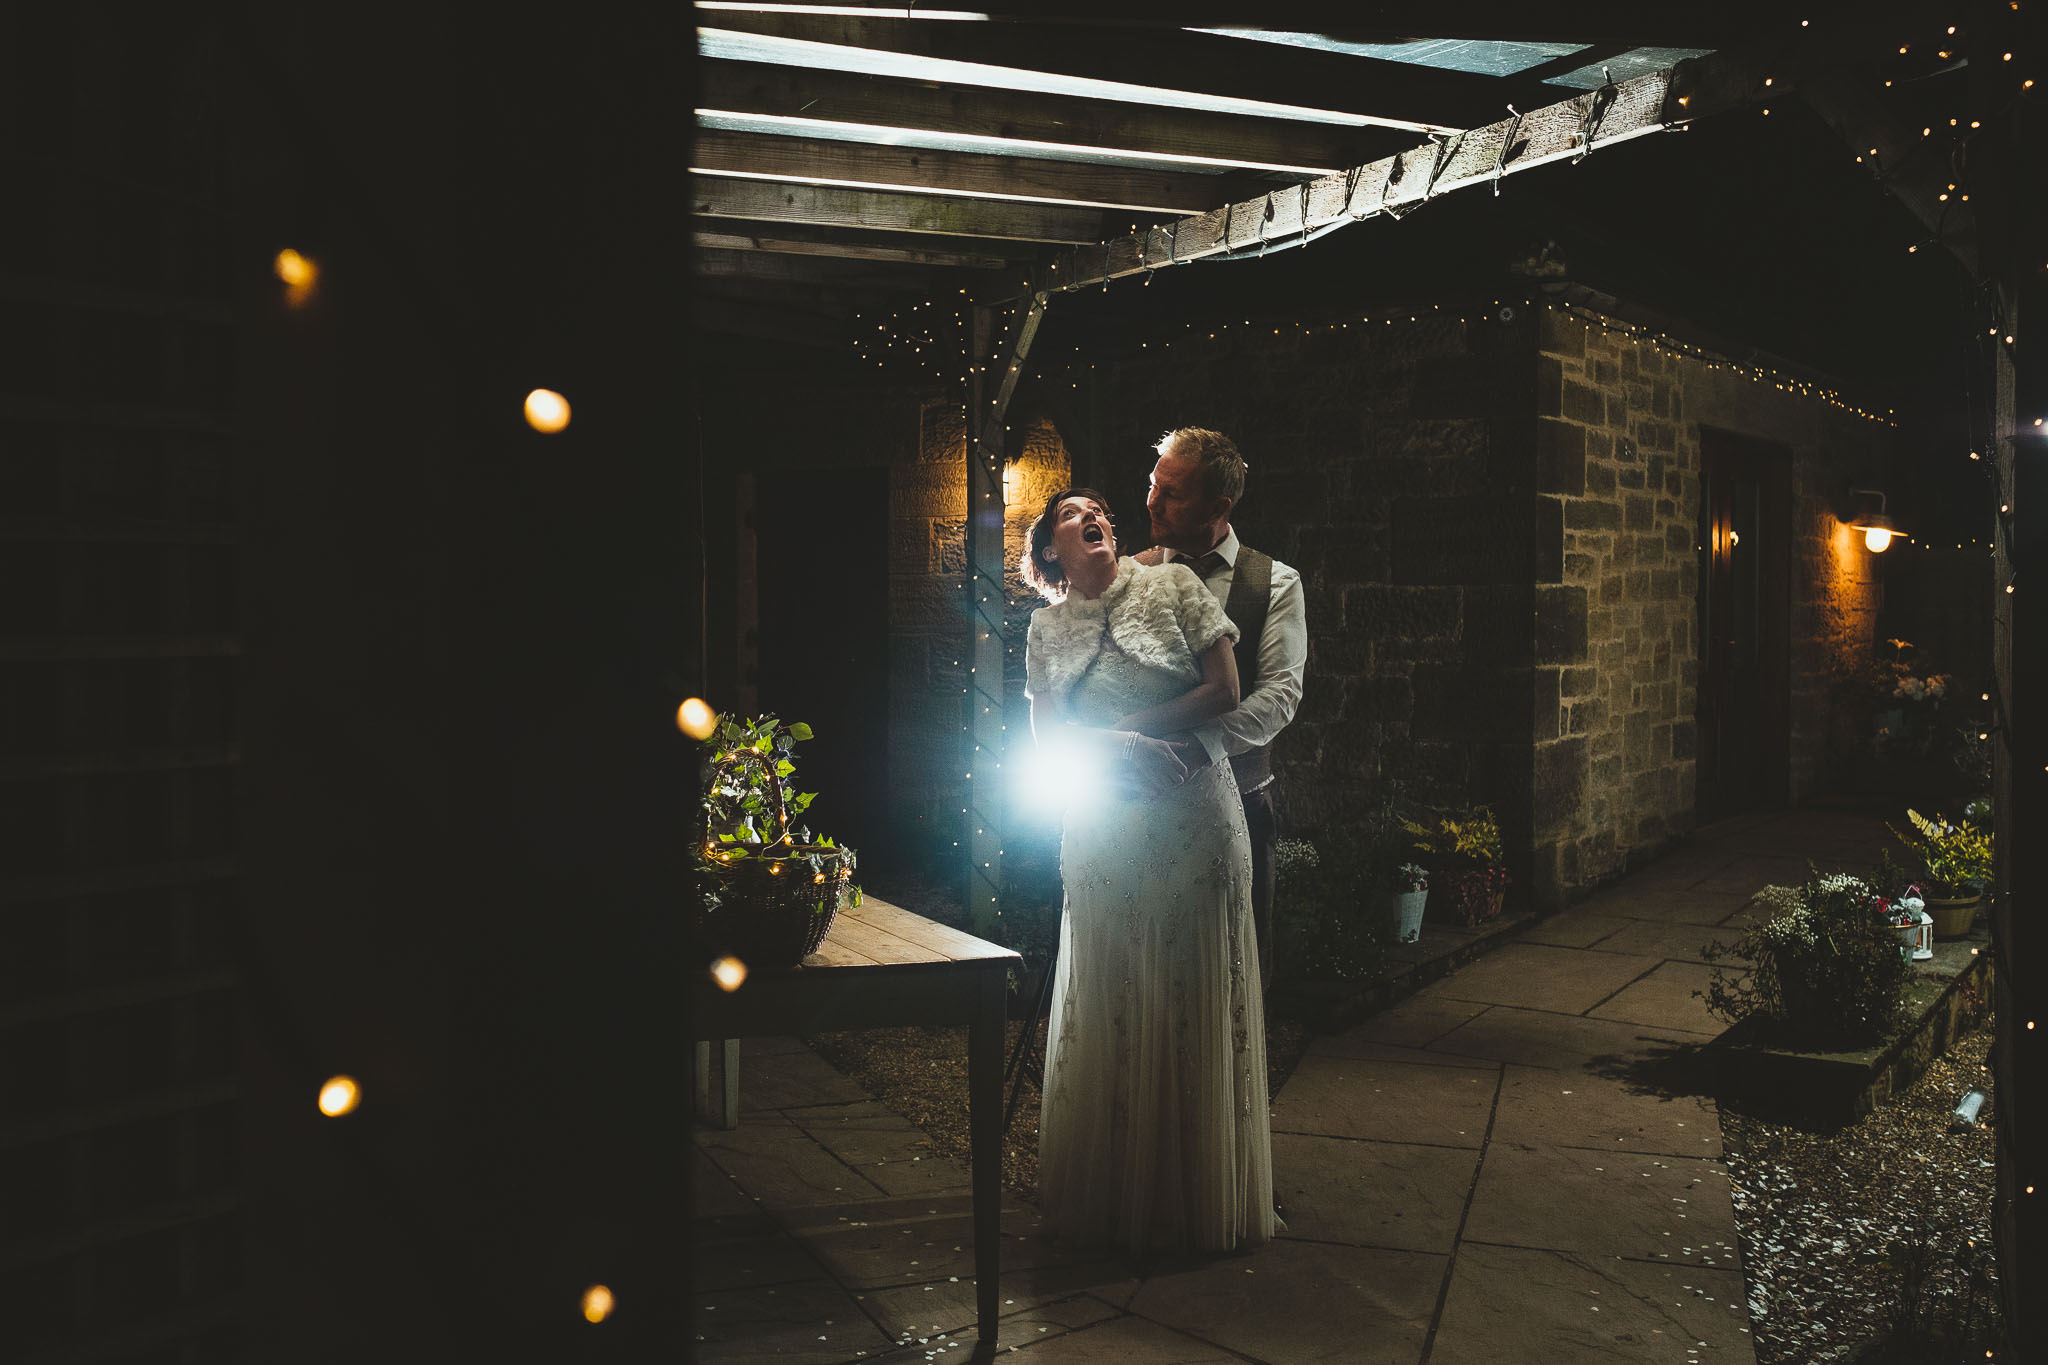 Funny nighttime portrait of bride and groom pulling faces